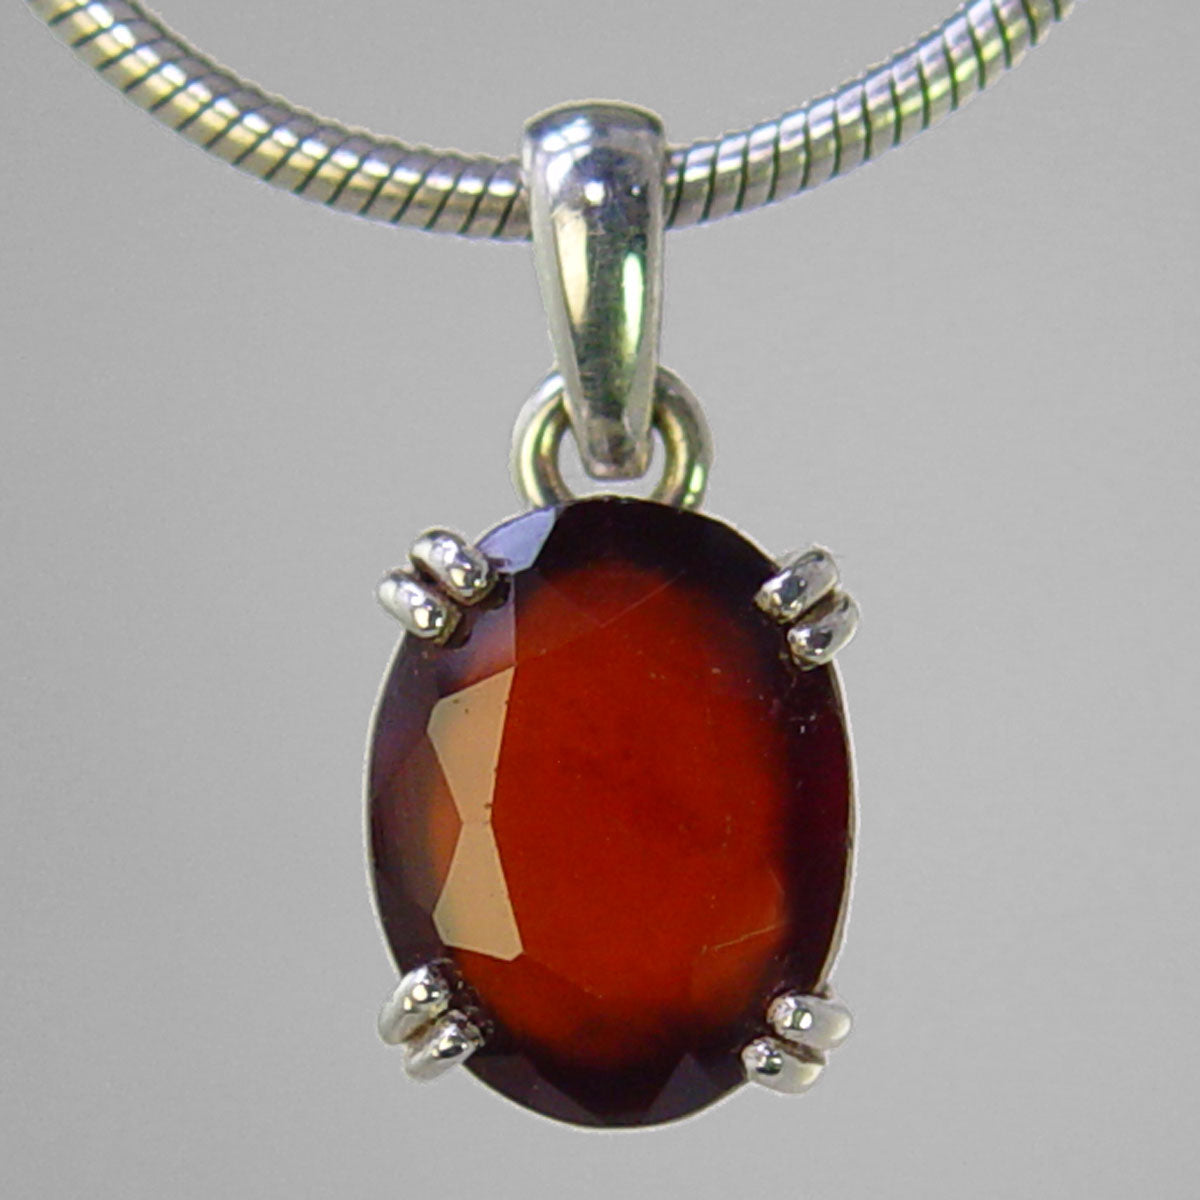 Hessonite Garnet 8.4 ct Faceted Oval Prong Set Sterling Silver Pendant